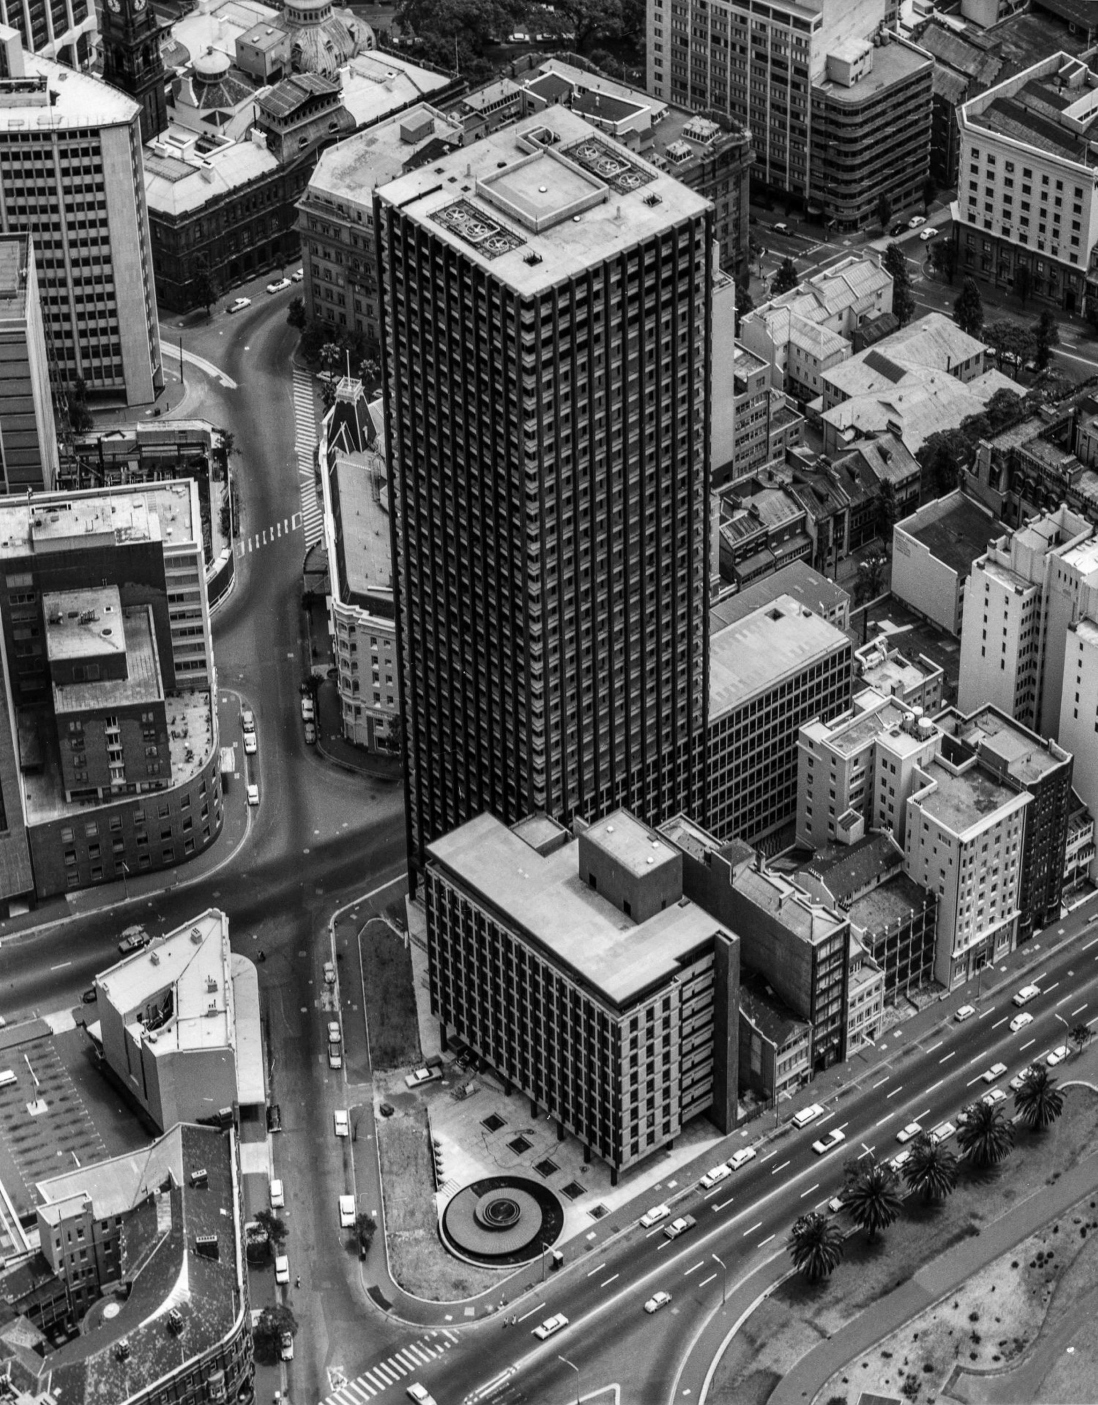 B&W image showing an aerial view of a skyscraper surrounded by smaller buildings on a street corner.